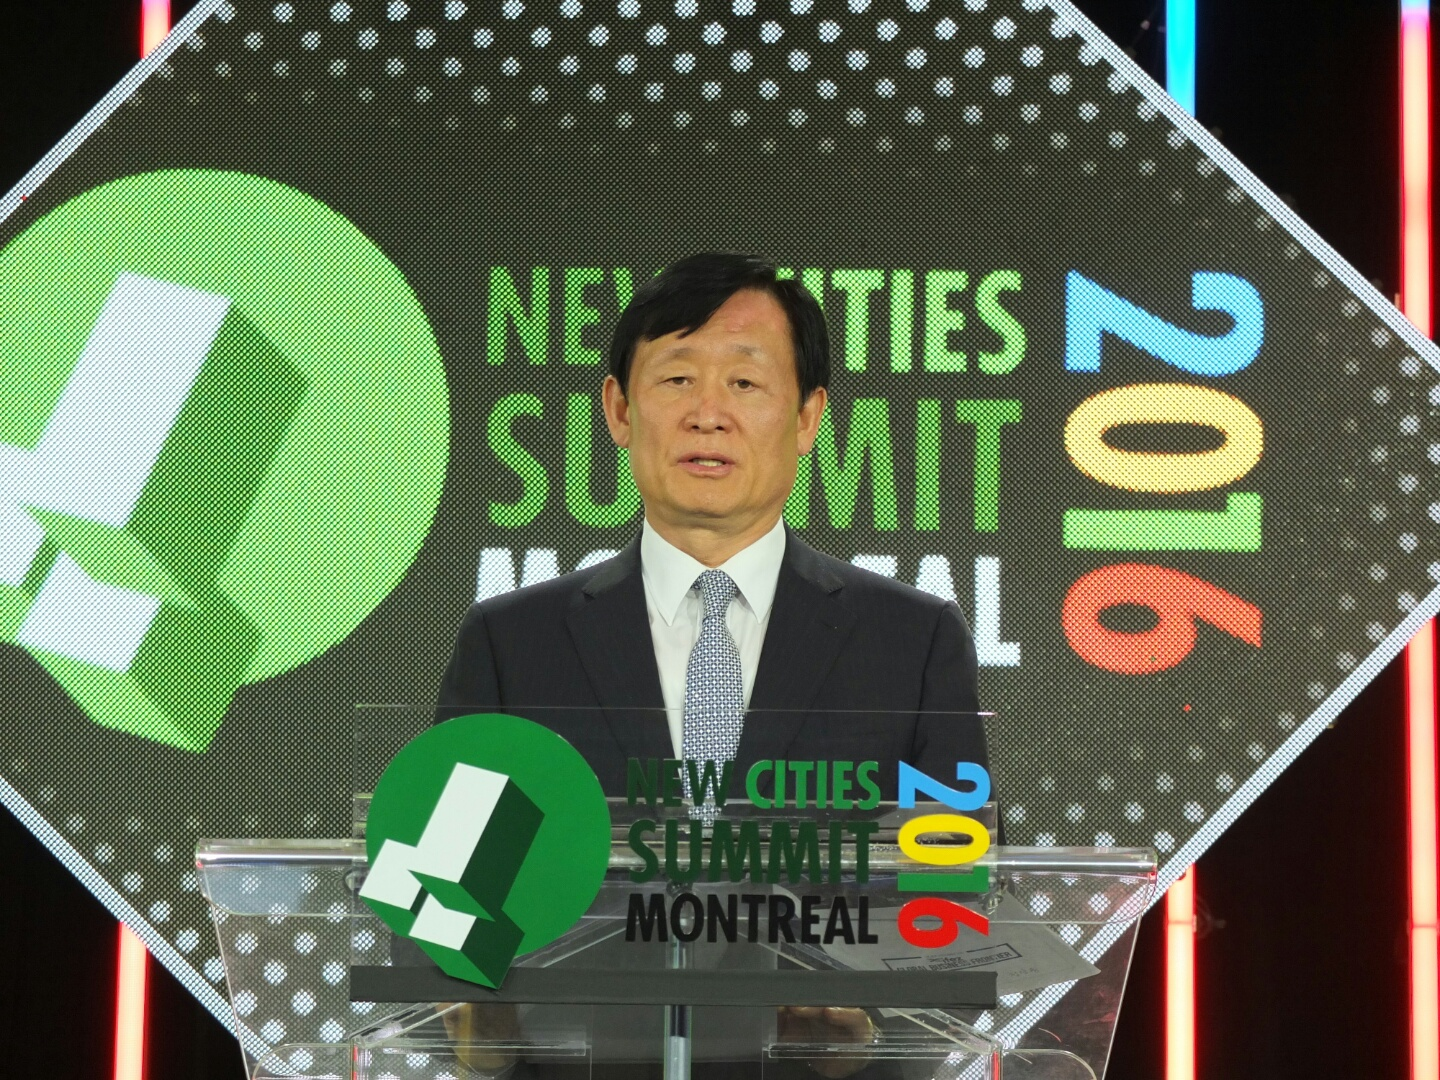 IFEZ Commissioner Lee Young-geun made a keynote speech at New Cities Summit 2016 in Montreal, Canada.